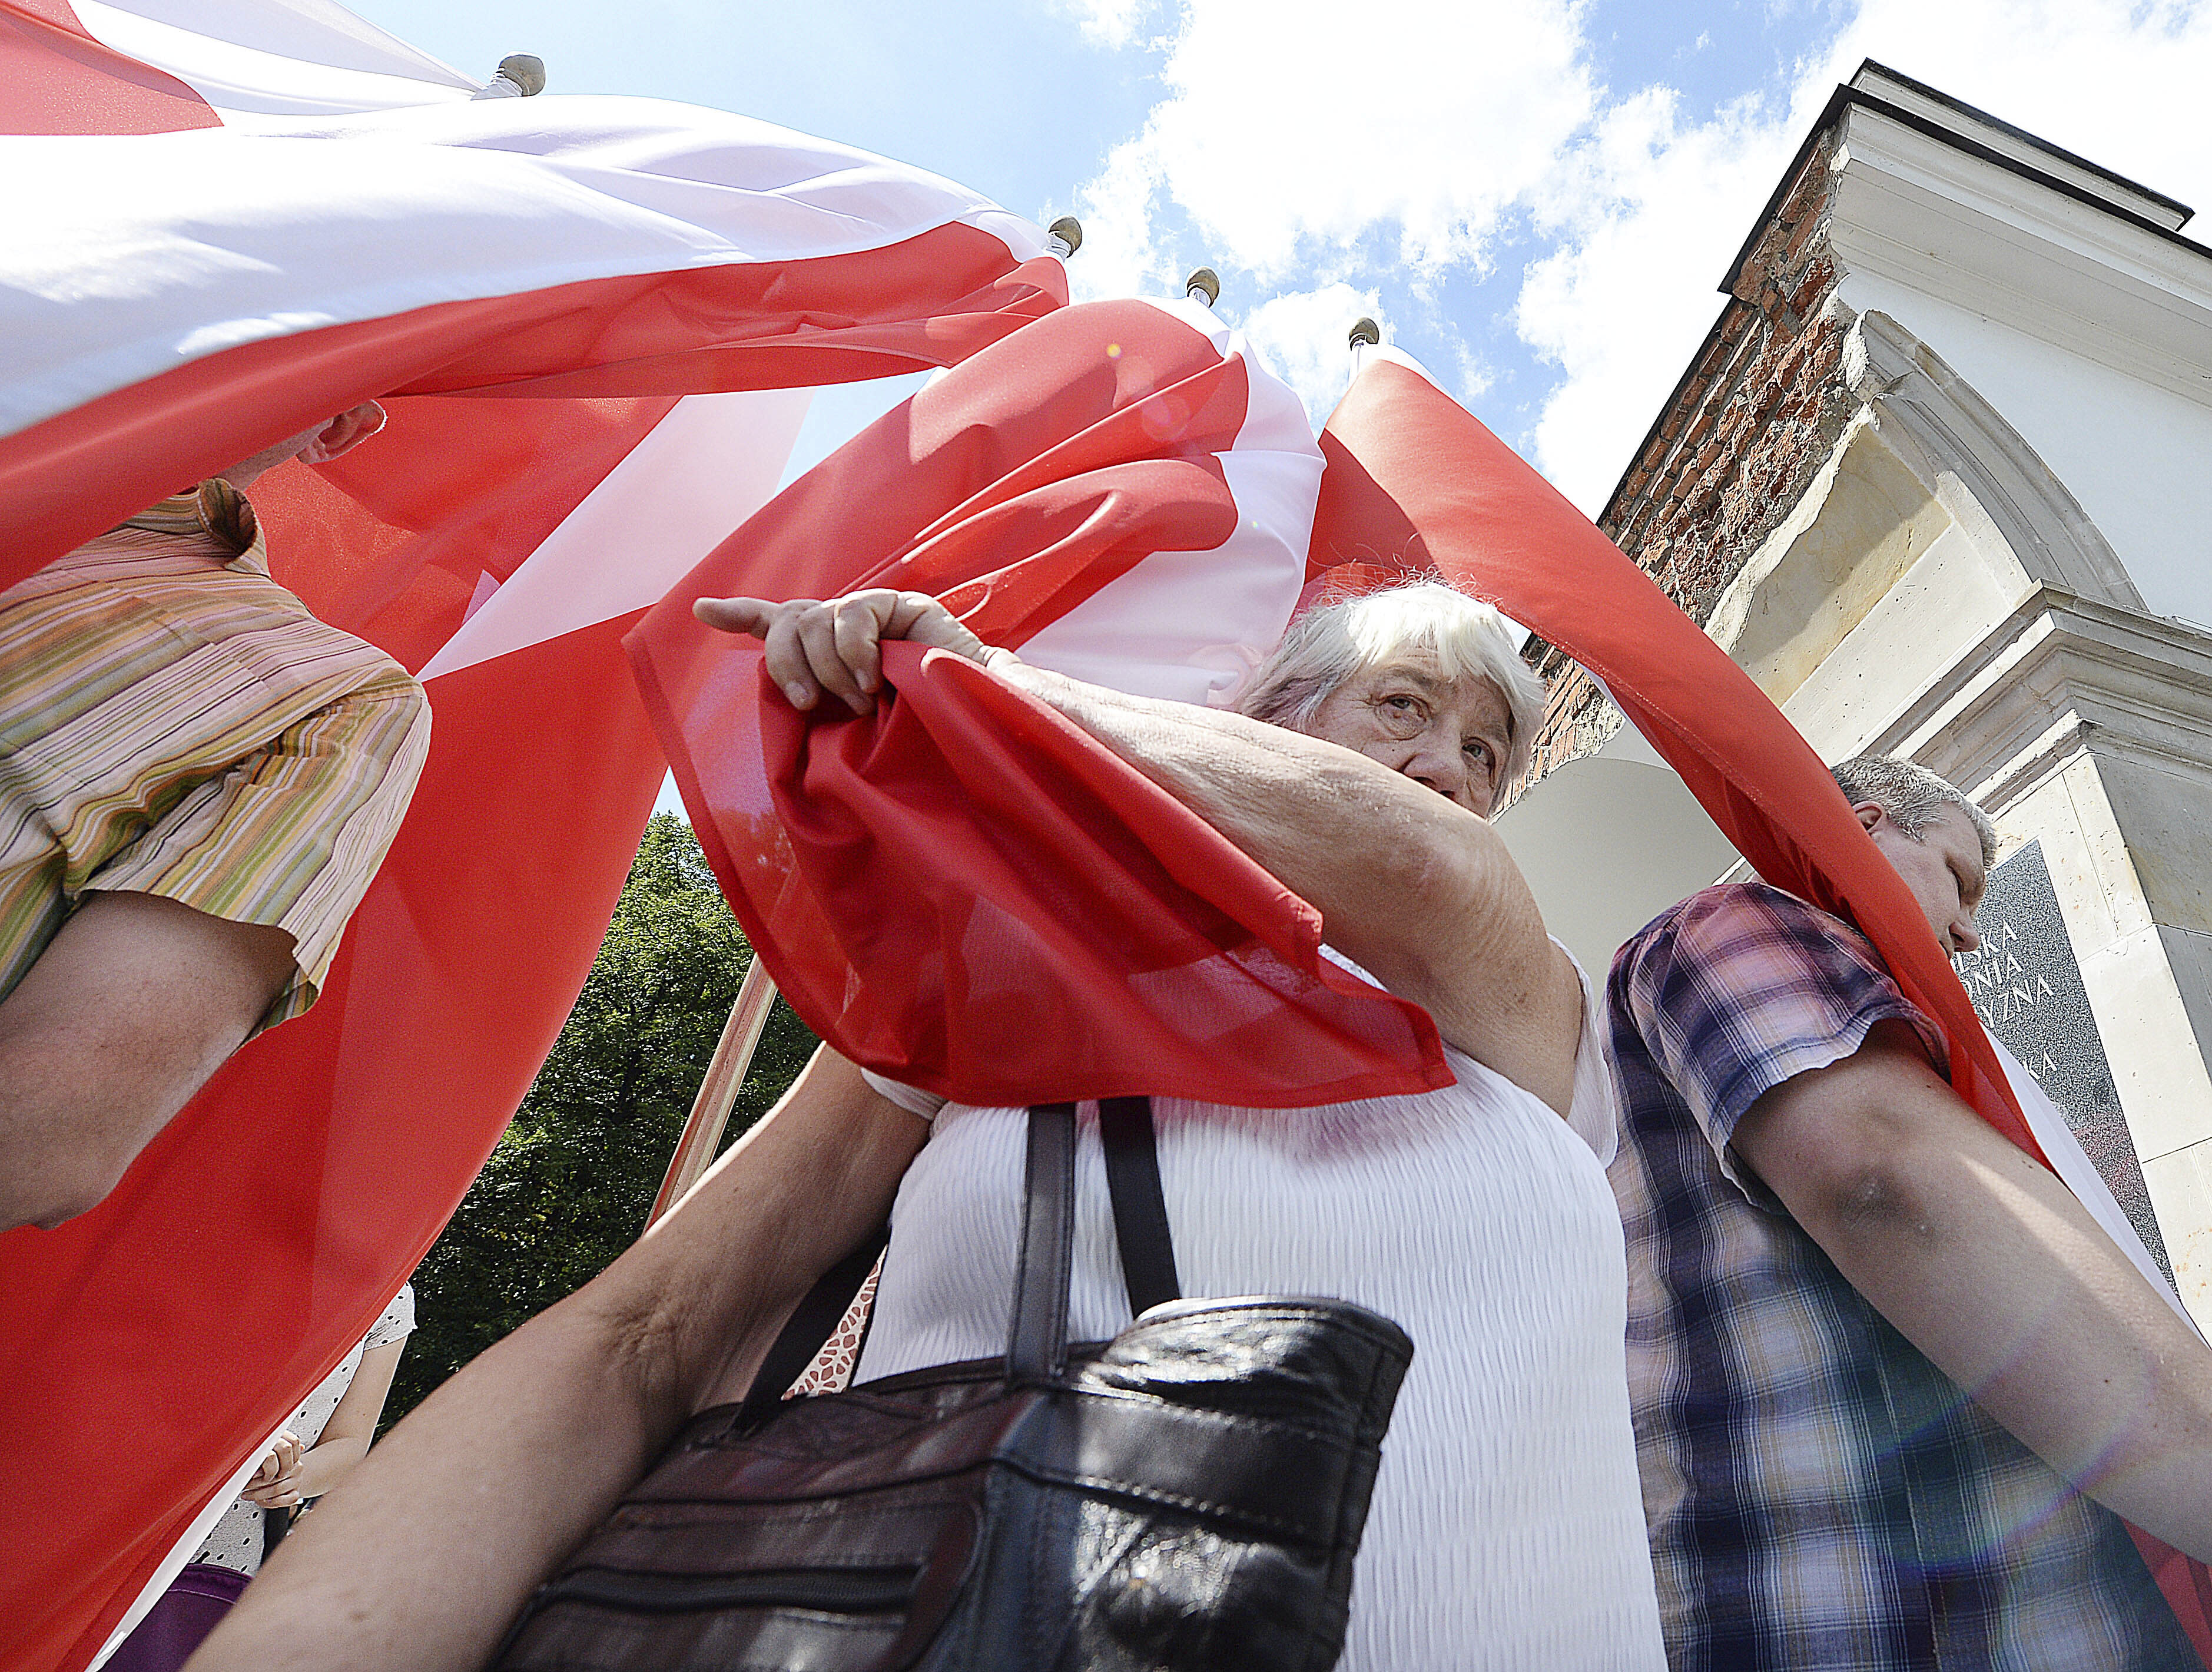 People hold Polish national flags as they attend an event by Polish officials and war veterans to pay tribute to a World War II-era underground force that collaborated with Nazi German forces toward the end of the war in their battle against the Communists, in Warsaw, Poland, Sunday, Aug. 11, 2019. President Andrzej Duda's official patronage and the presence of ruling party officials underlined the right-wing government's rehabilitation of a partisan unit that fought both Germans and Soviets and which is celebrated by the far right. (AP Photo/Czarek Sokolowski)